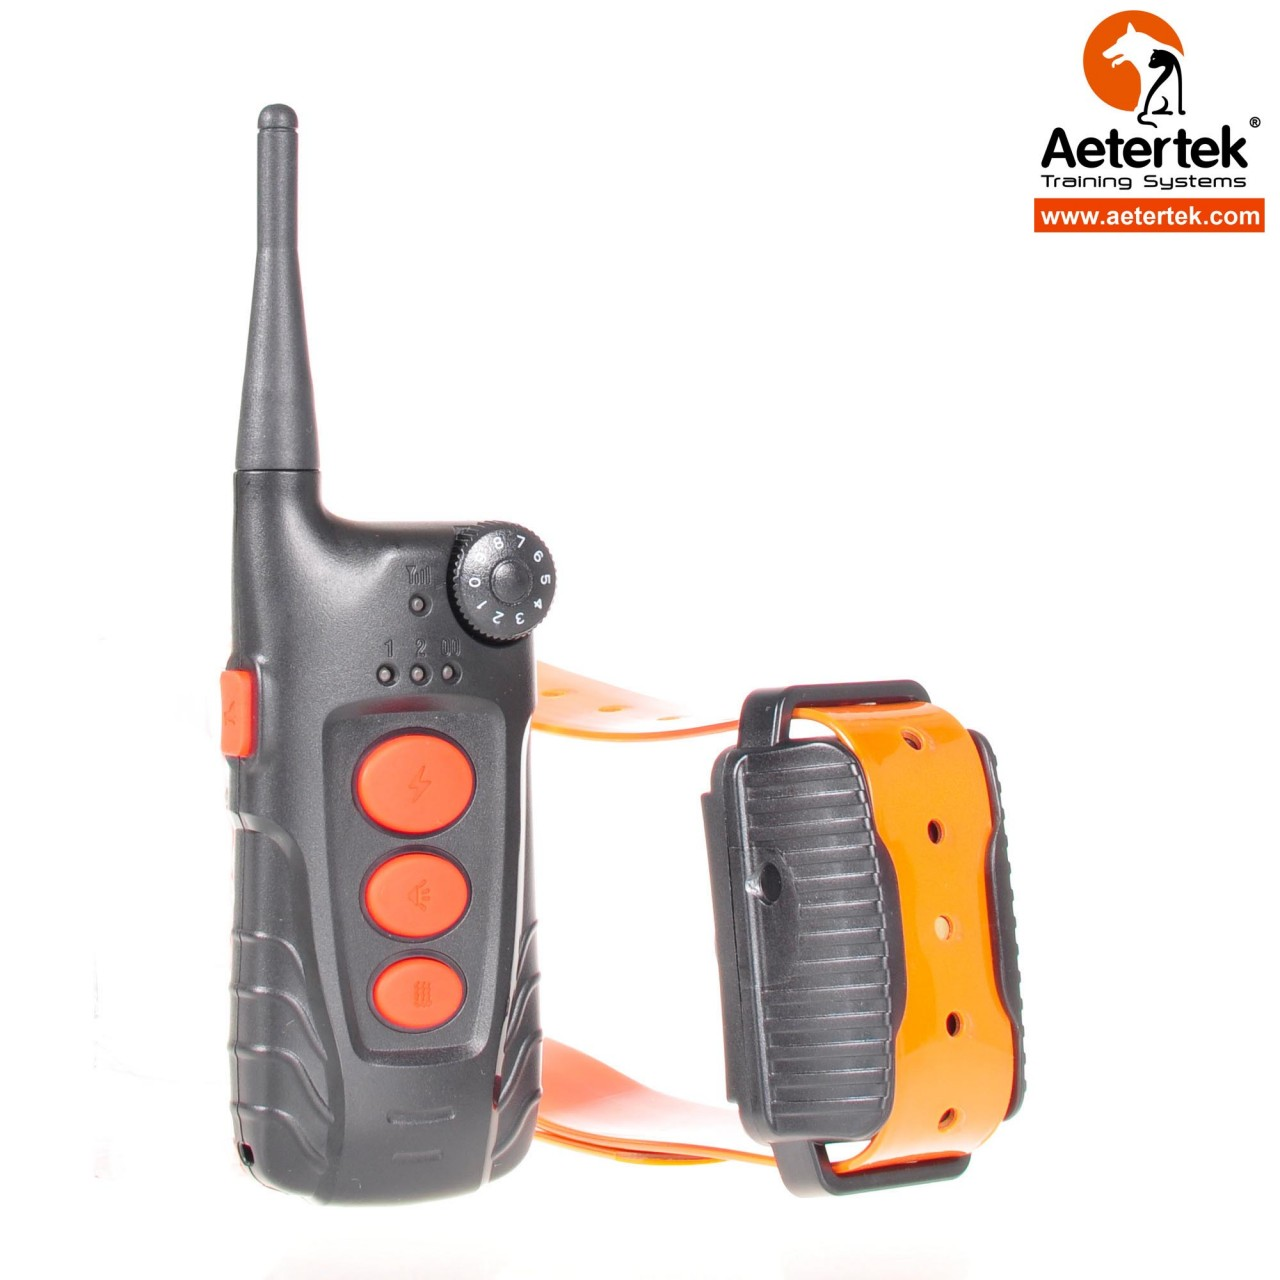 c19e90f73cd4 Casa    Aetertek AT-918C    Aetertek nuevo AT-918C 1 collar de choque de  entrenamiento remoto de perro recargable y sumergible rango 550M